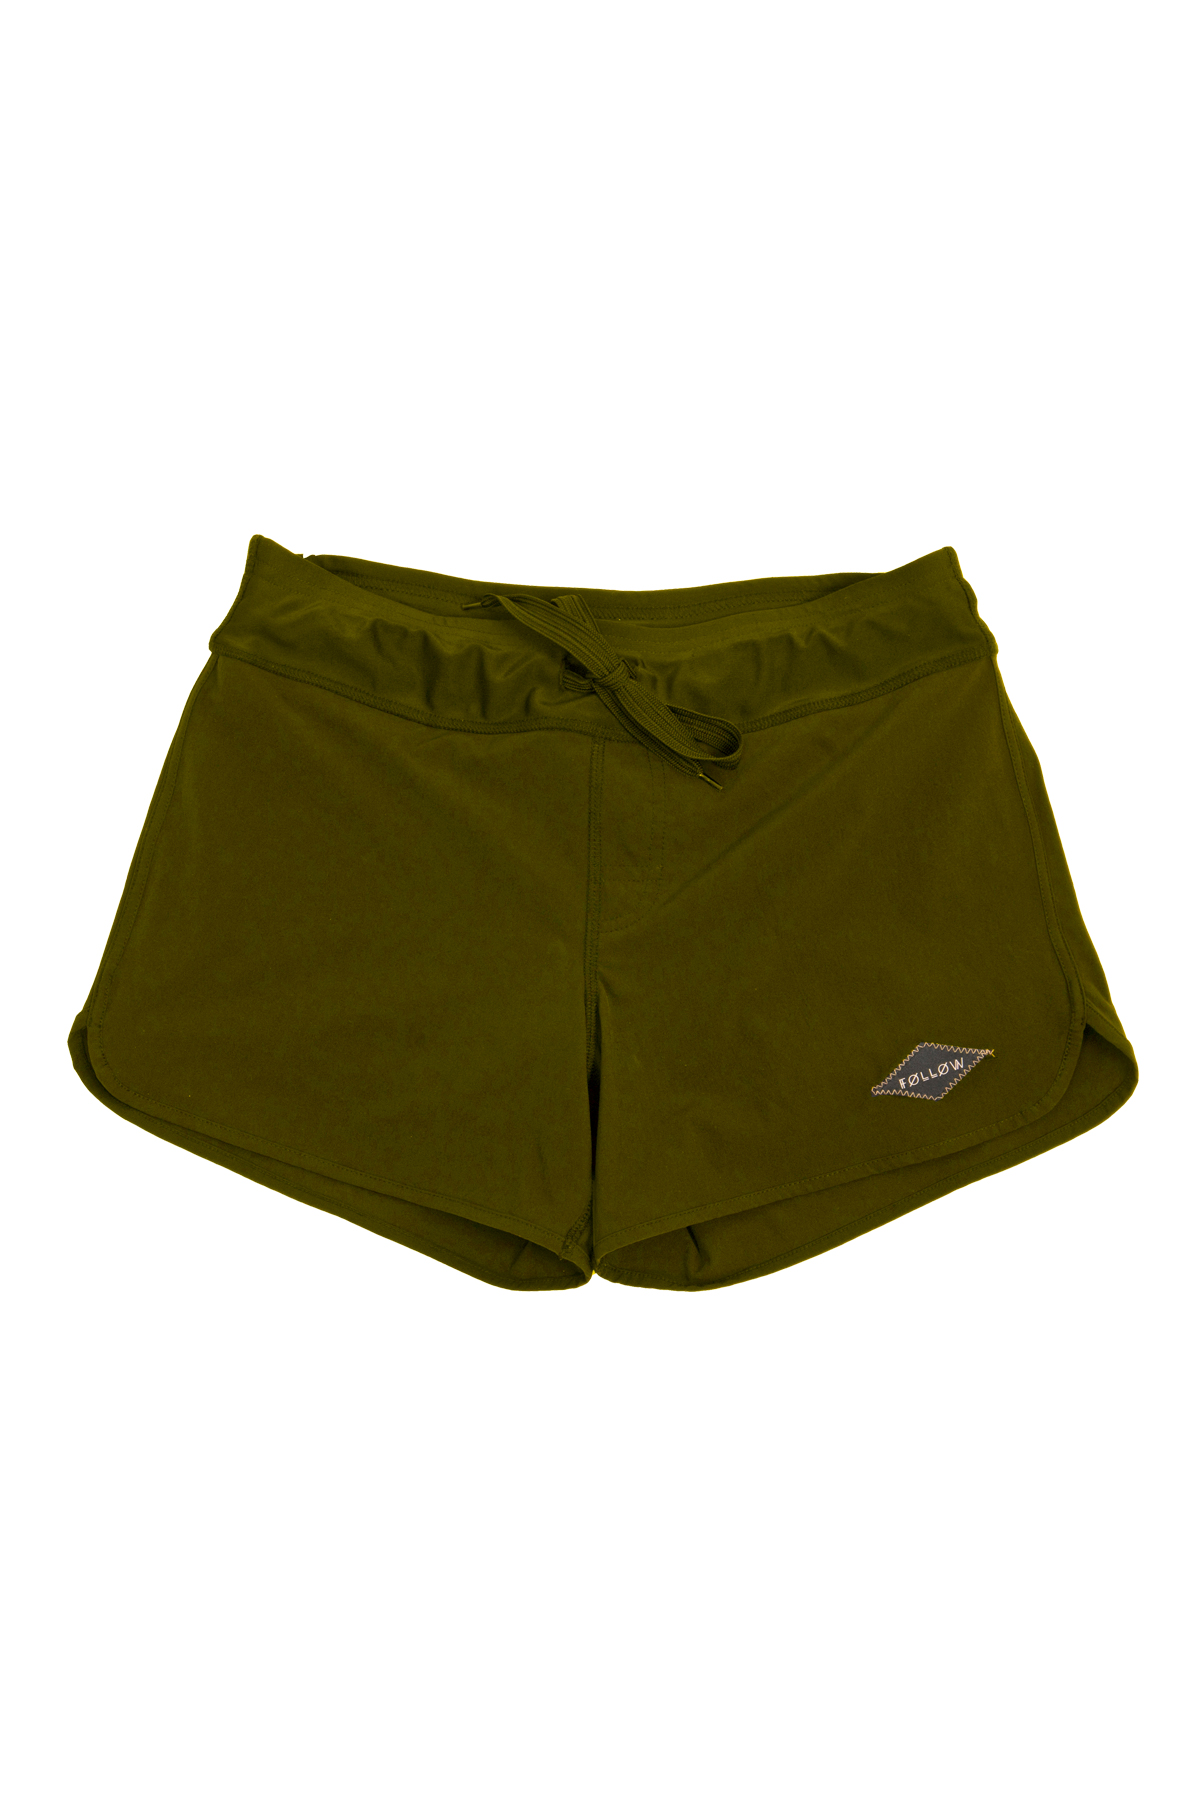 PHARAOH RIDE SHORTS - OLIVE FOLLOW 2019